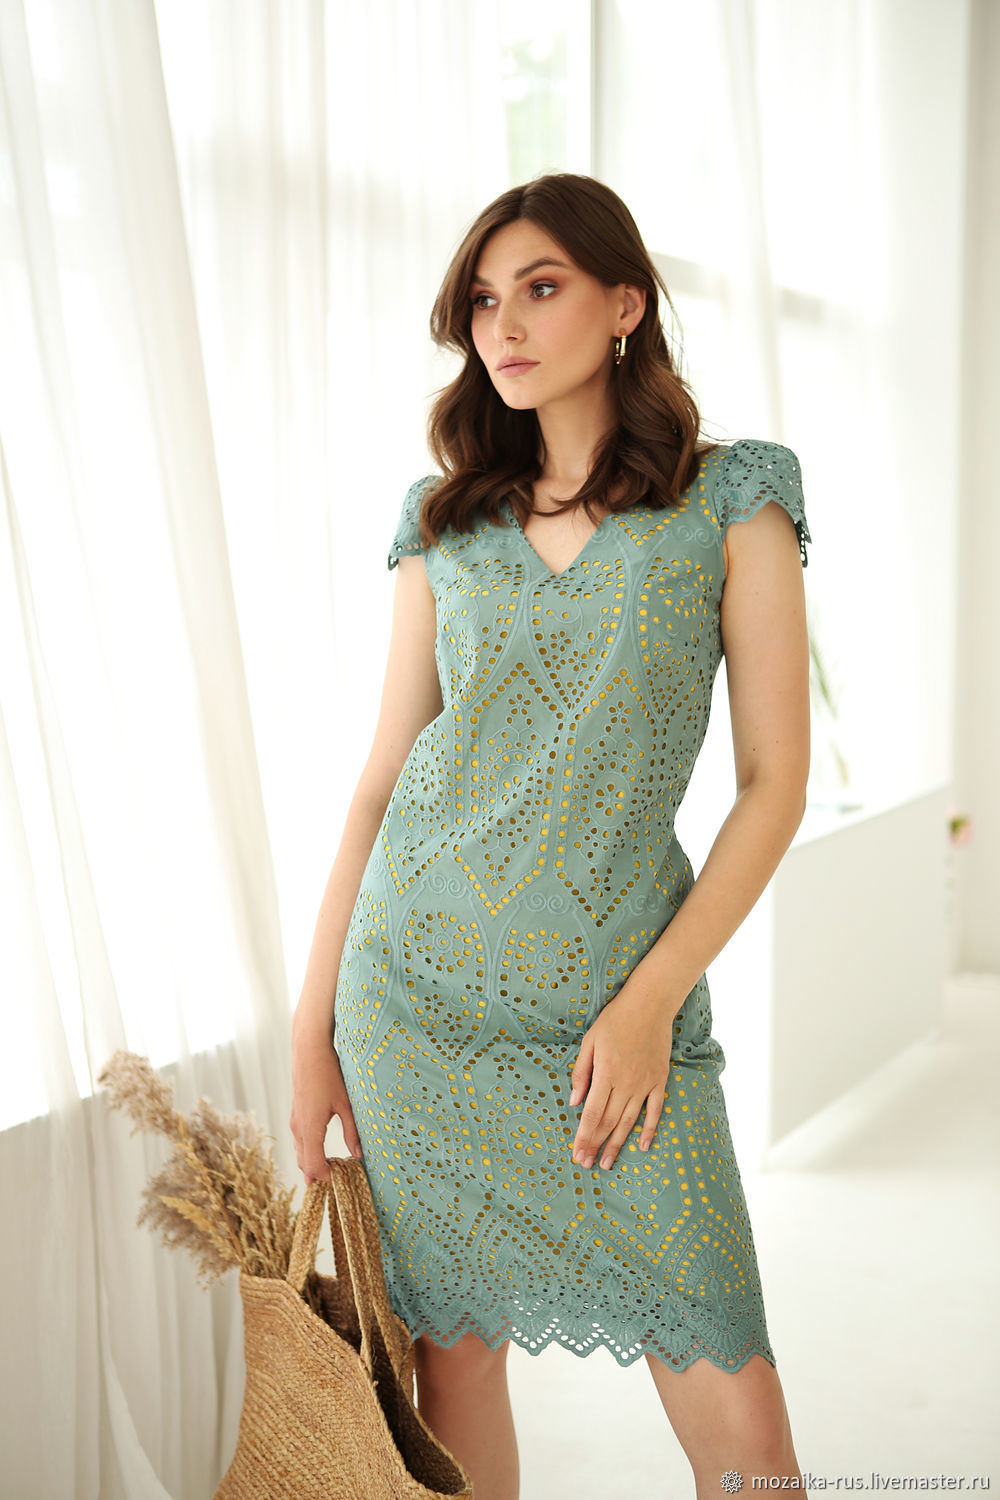 Byzantium cotton dress2, turquoise-yellow dress, Dresses, Novosibirsk,  Фото №1